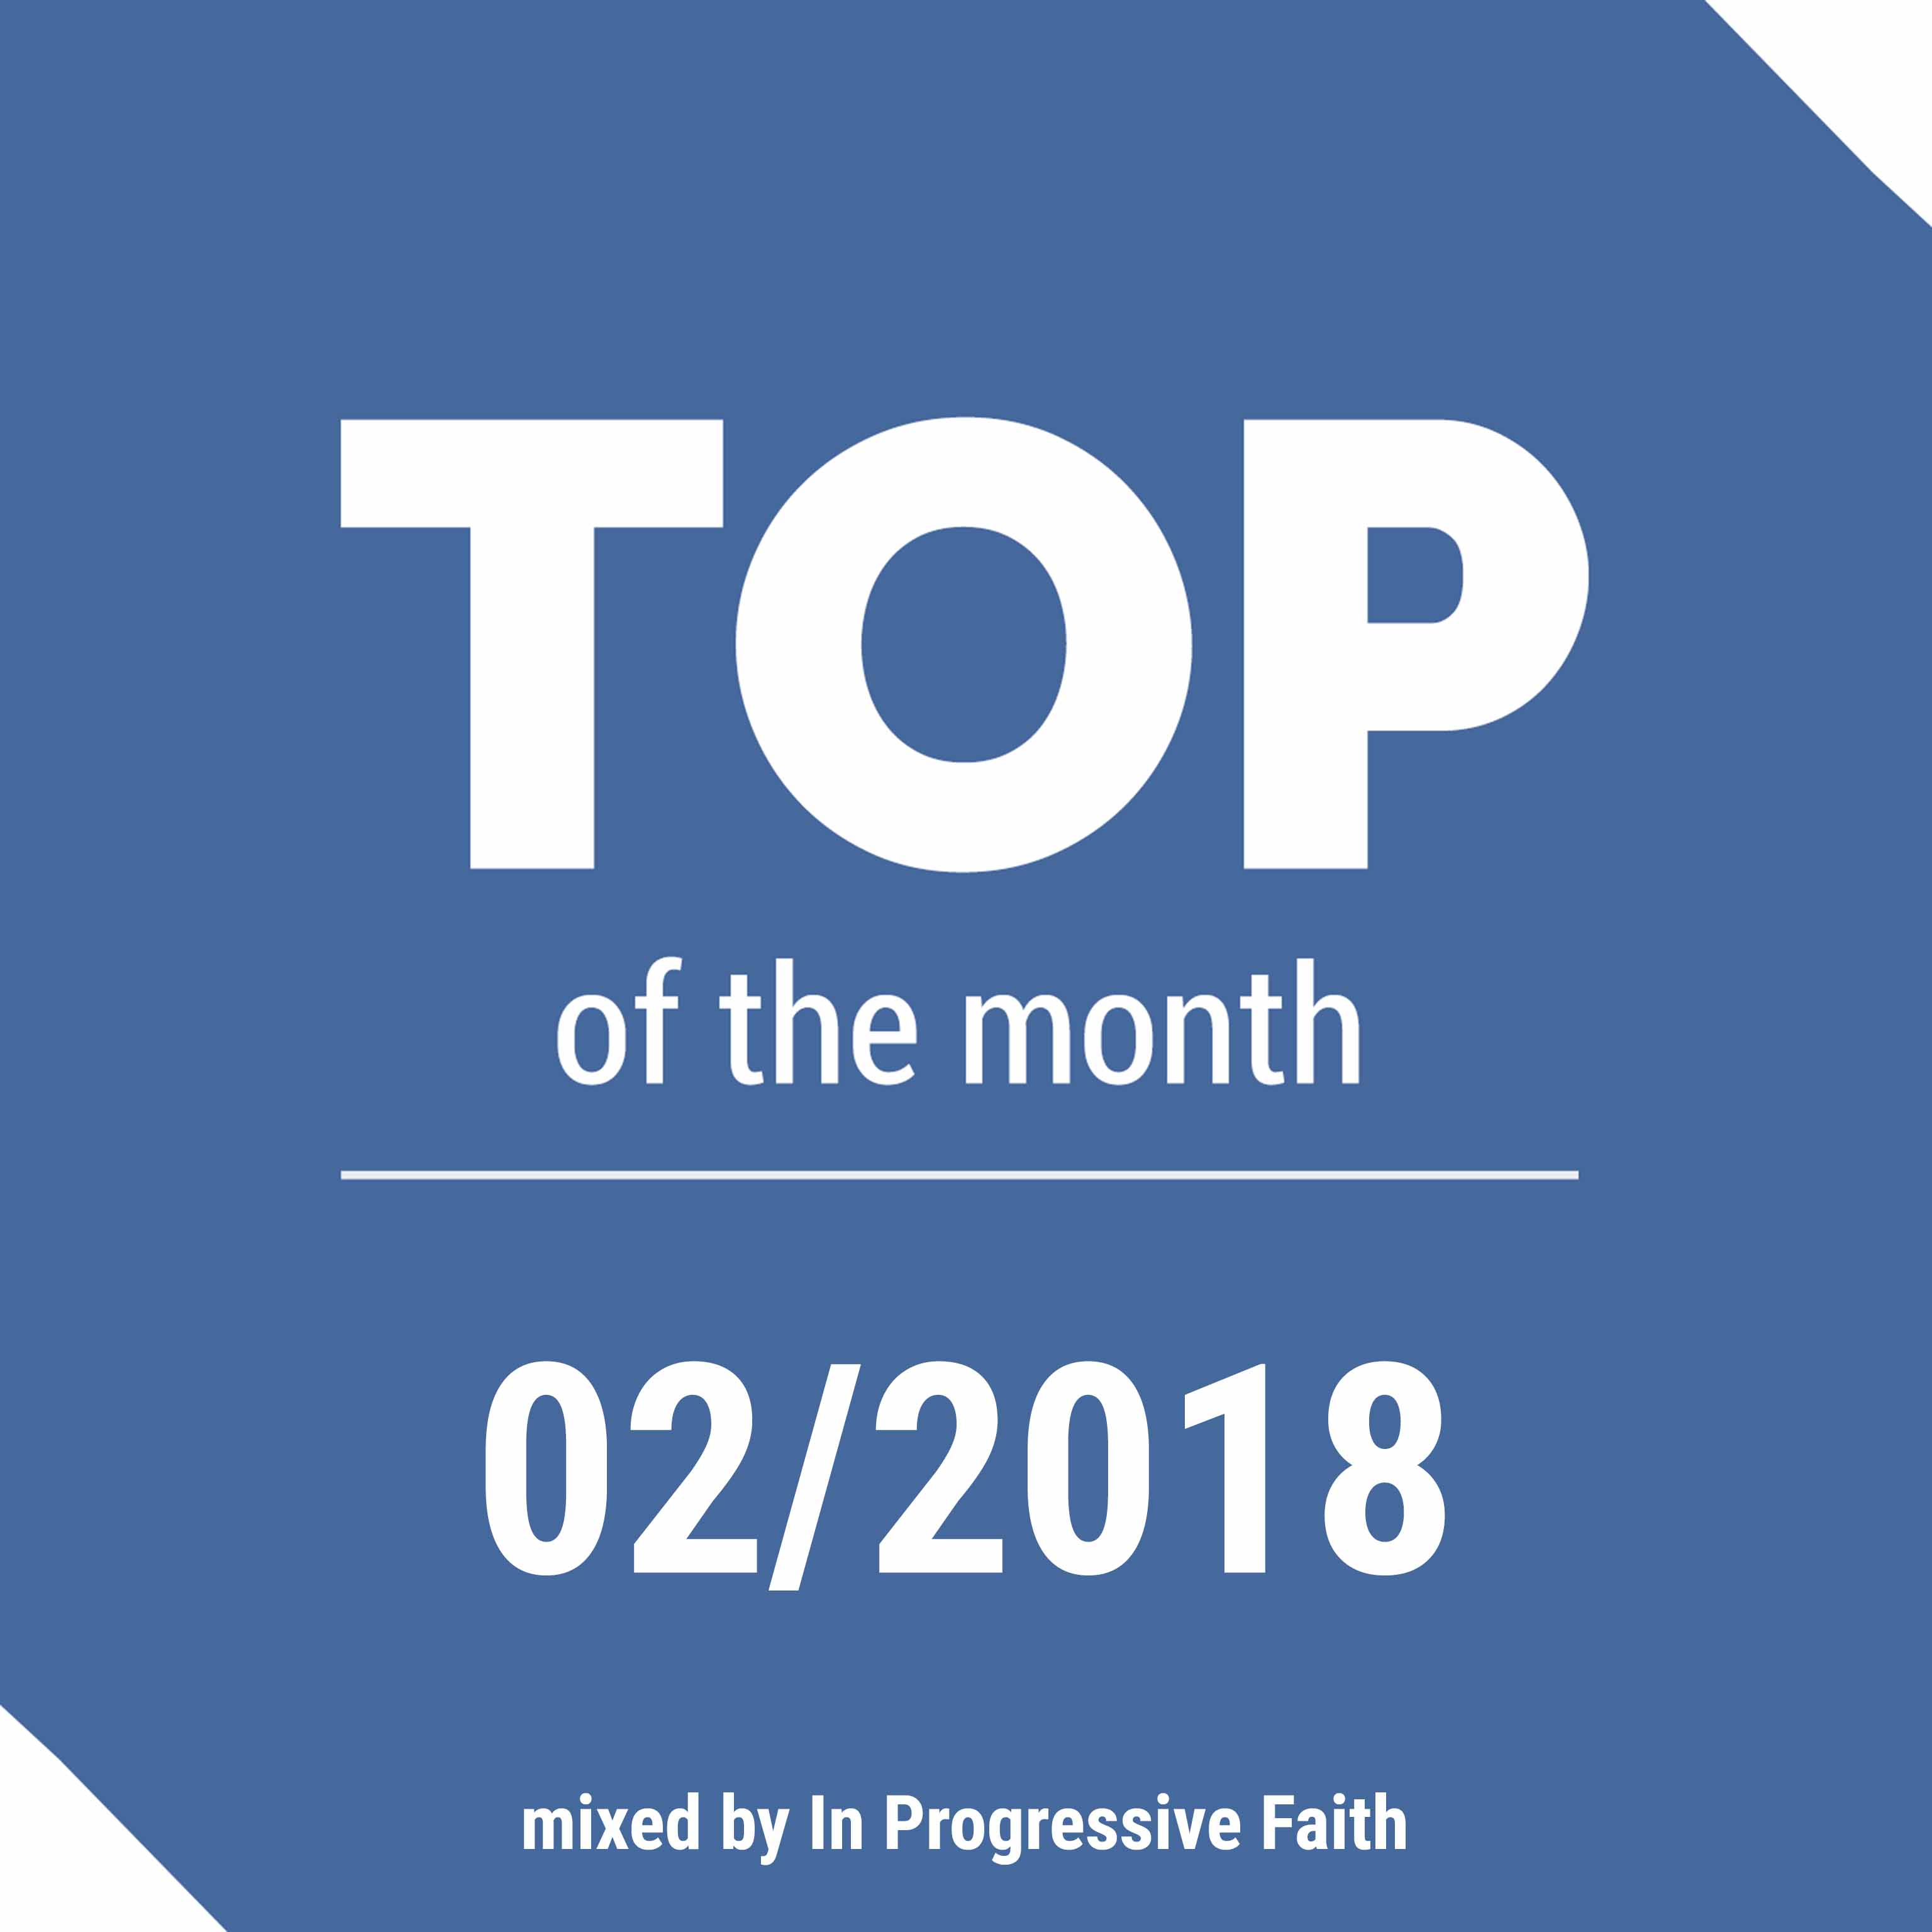 Top 10 of February 2018